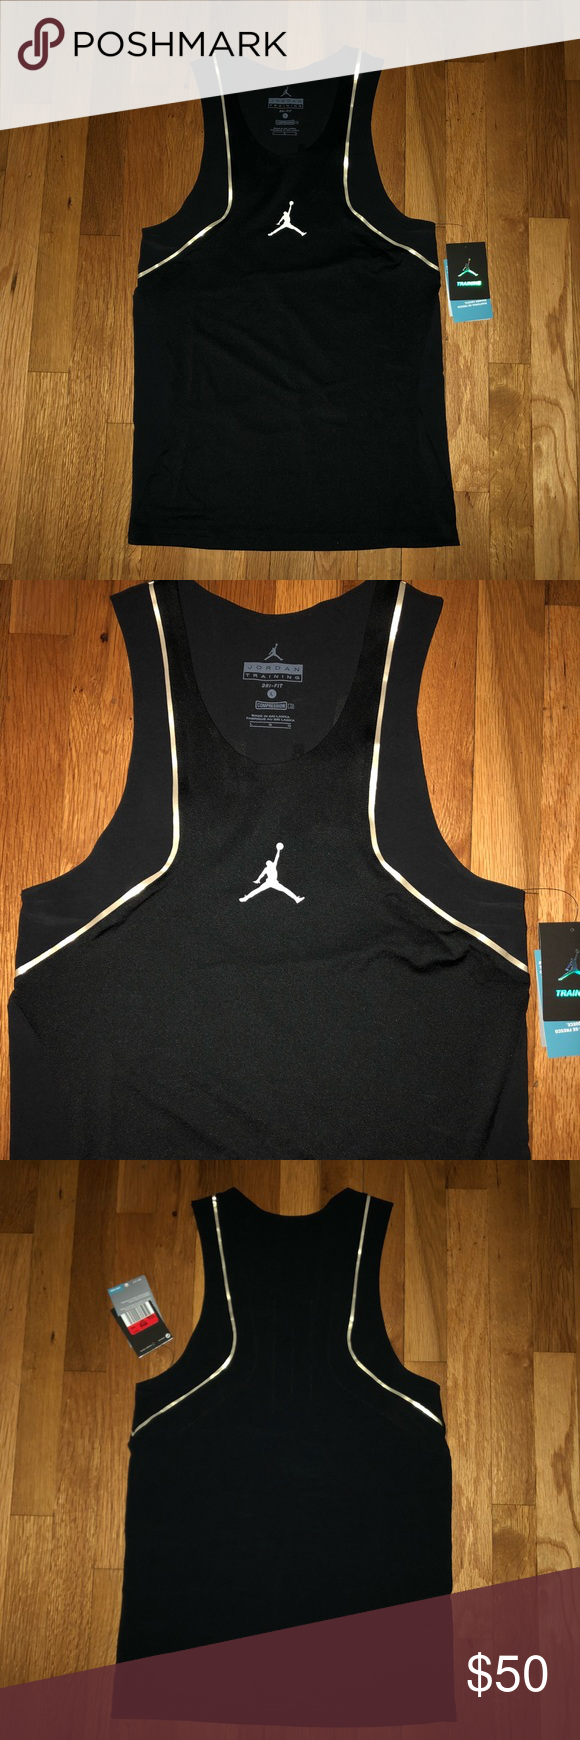 e8bd96a1d2bd MENS JORDAN ULTIMATE FLIGHT COMPRESSION TANK TOP BRAND NEW WITH TAGS  VENTILATED LOCKDOWN  The Jordan